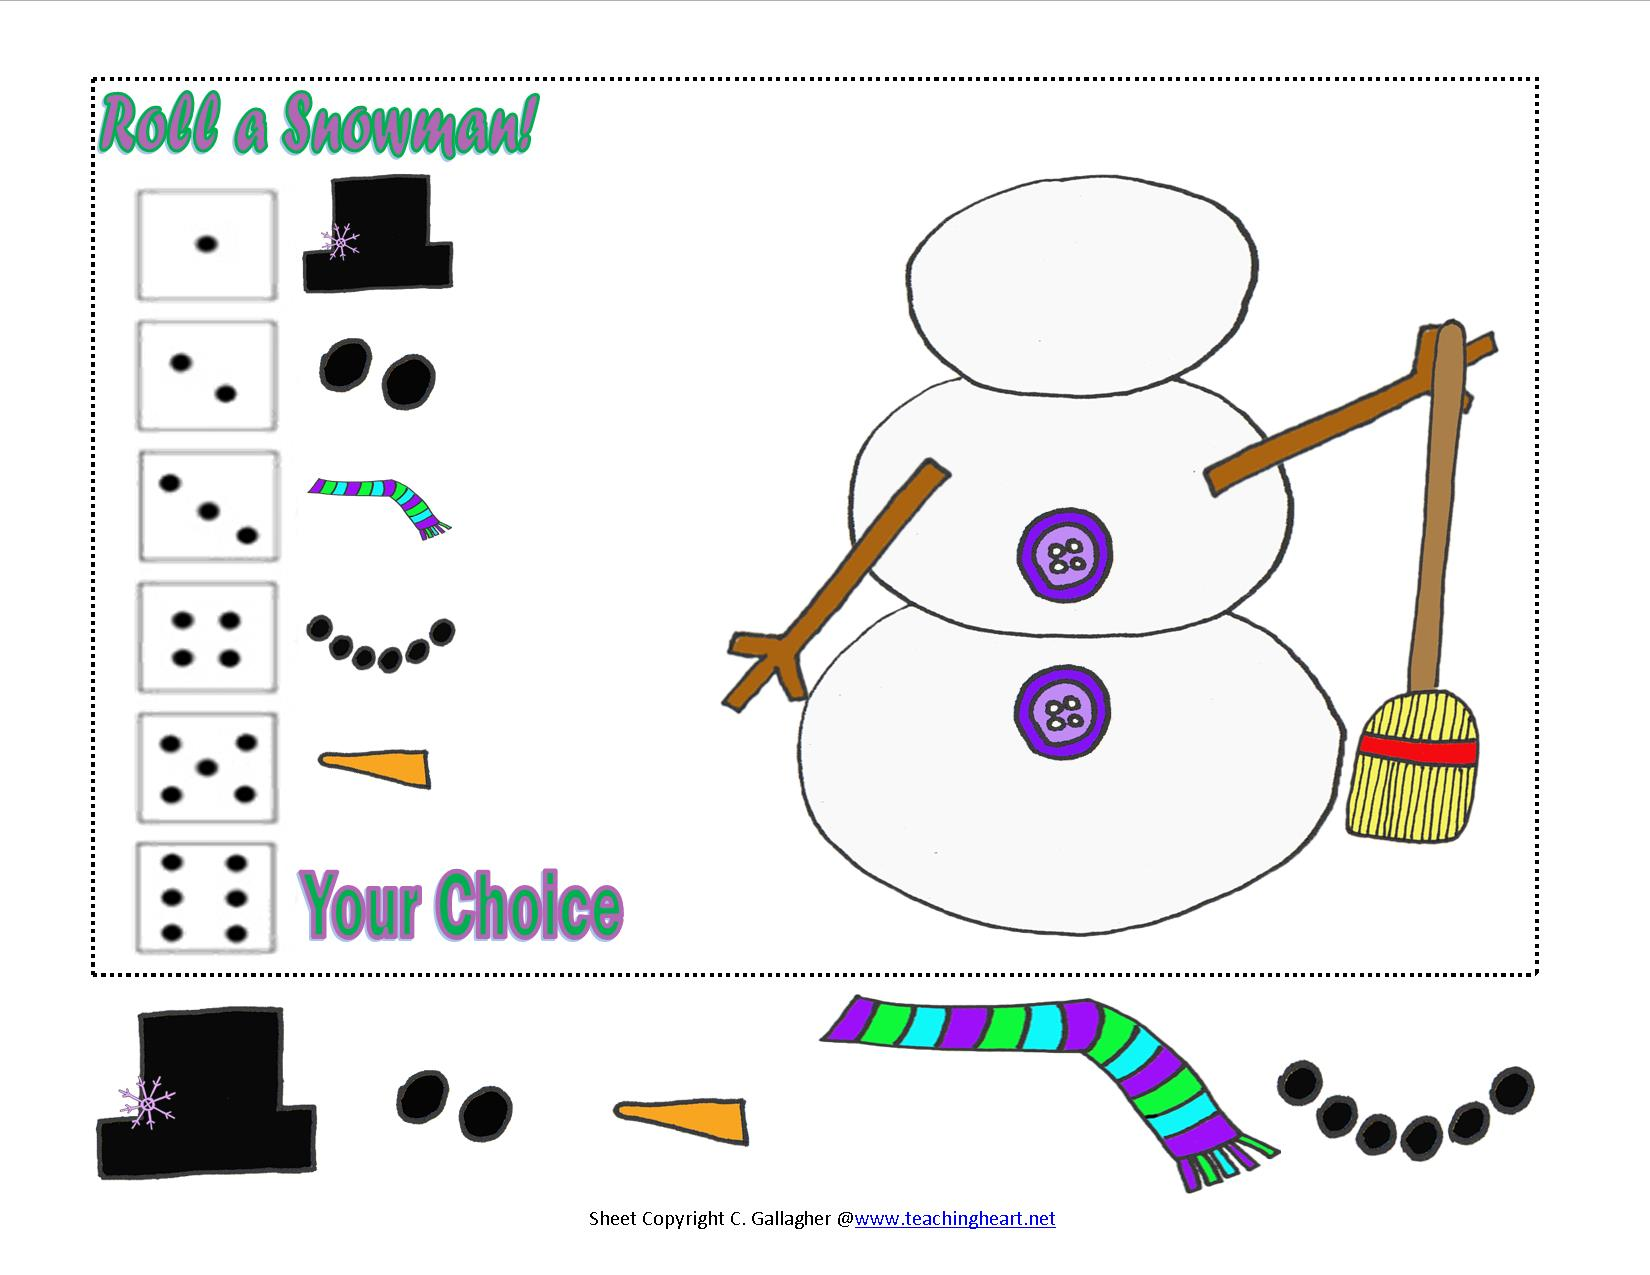 roll a snowman and new snowman packet teaching heart blog teaching heart blog. Black Bedroom Furniture Sets. Home Design Ideas